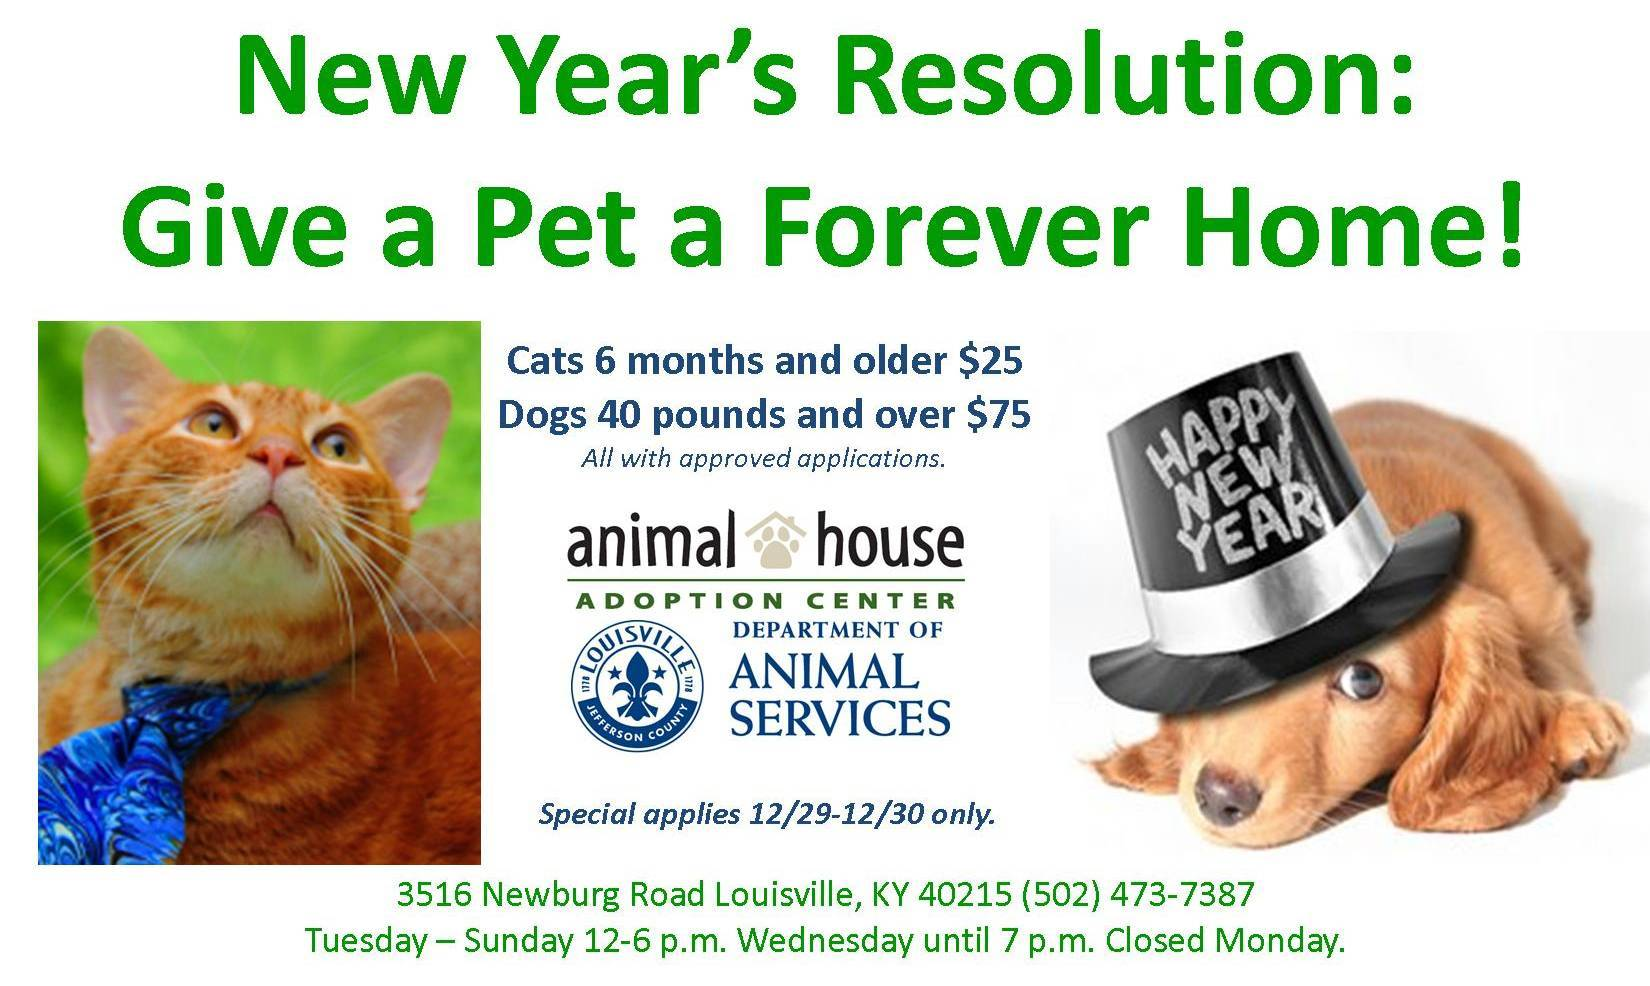 Resolution: Provide a Loving Home and Take Advantage of SPECIALS!